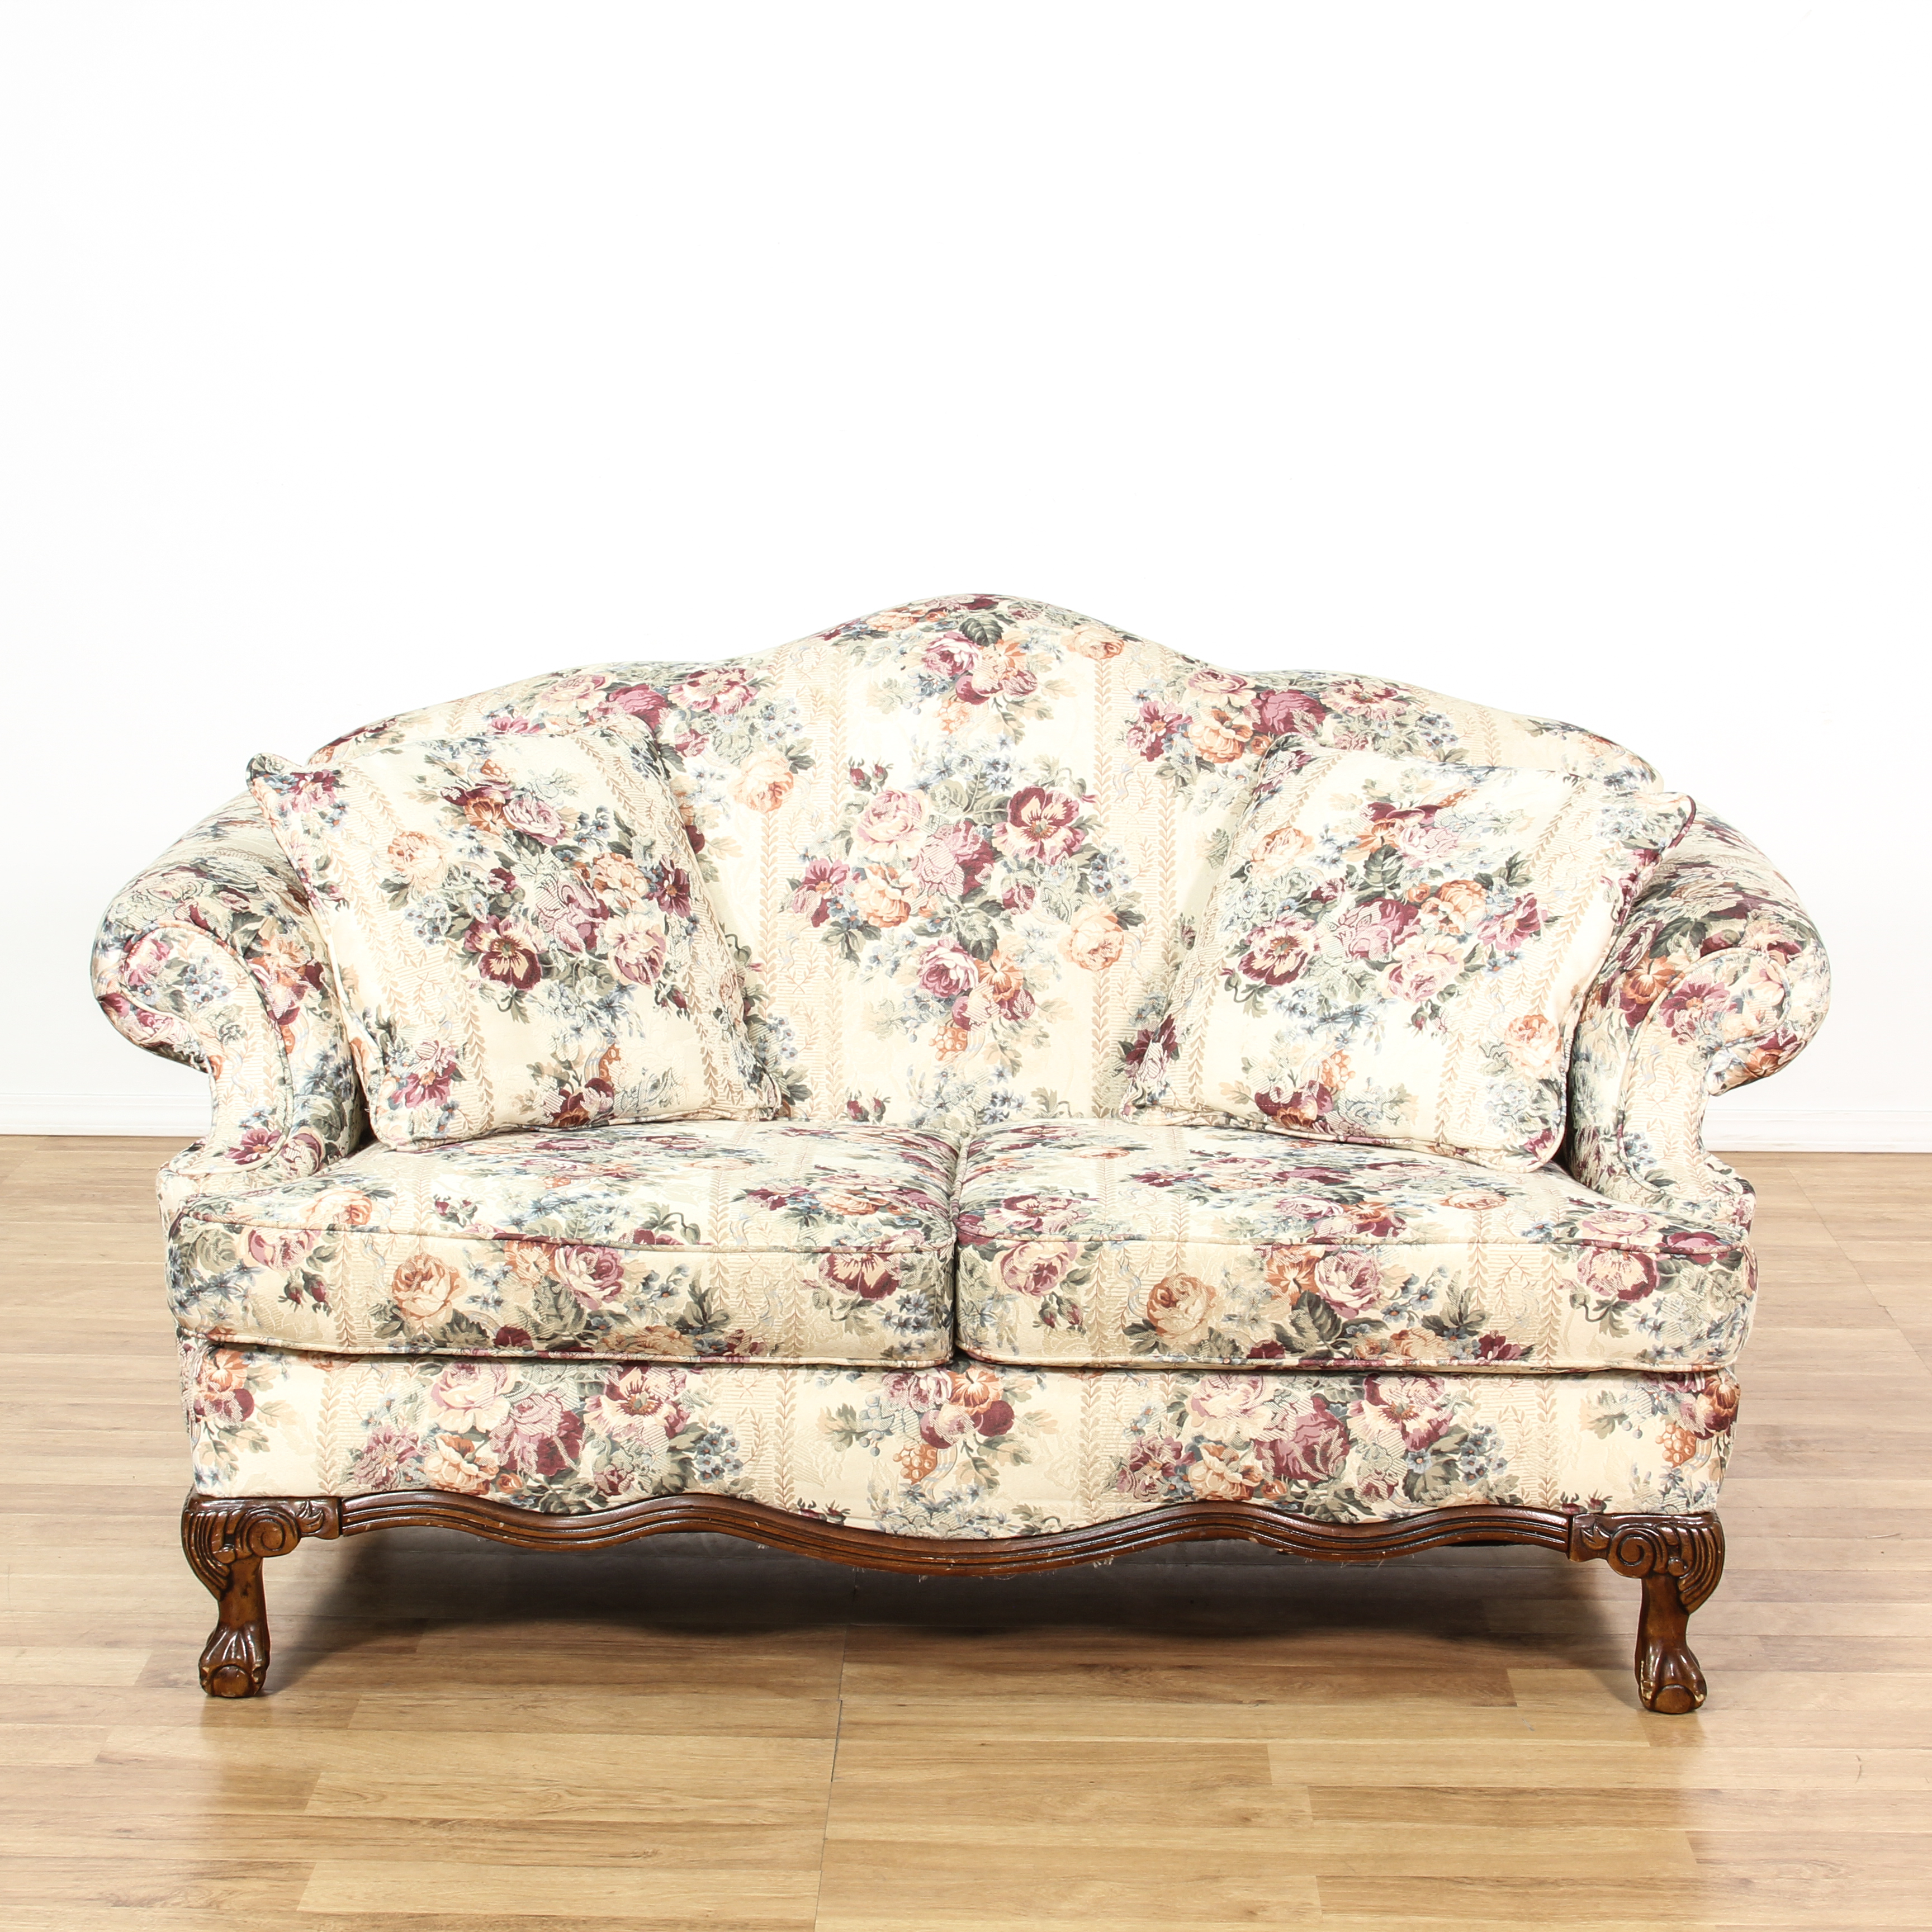 floral sectional sofa shallow dimensions curved back white loveseat vintage